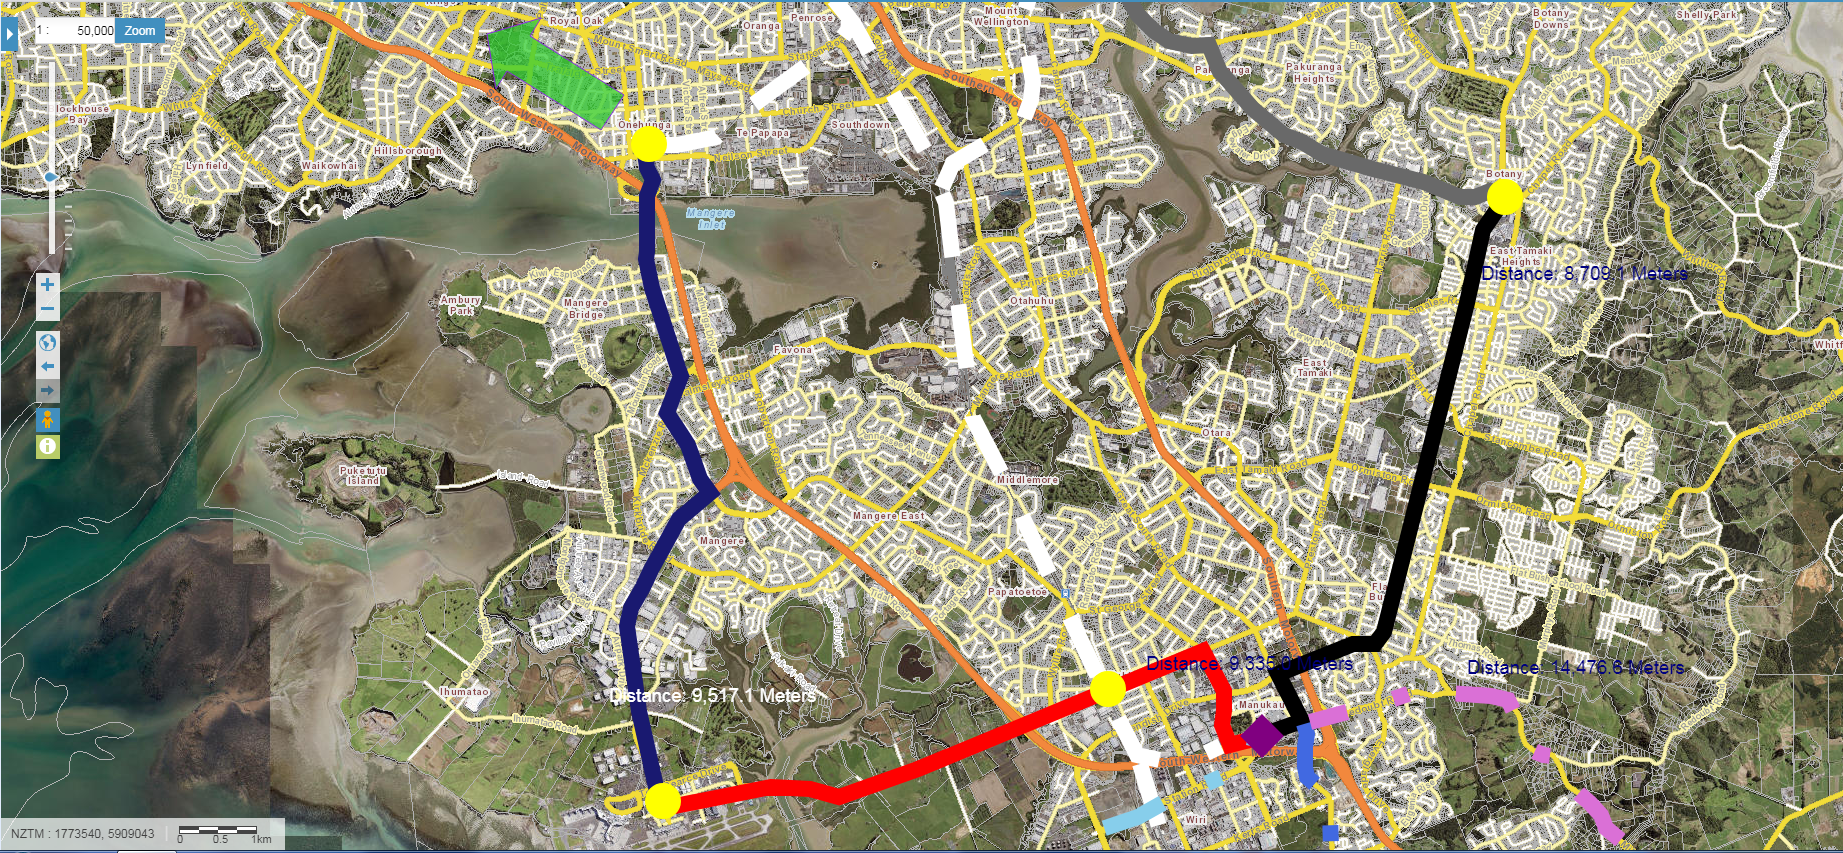 Light Rail for $2.5 Billion? Possible? Yes While Improving Accessibility and Social Equity